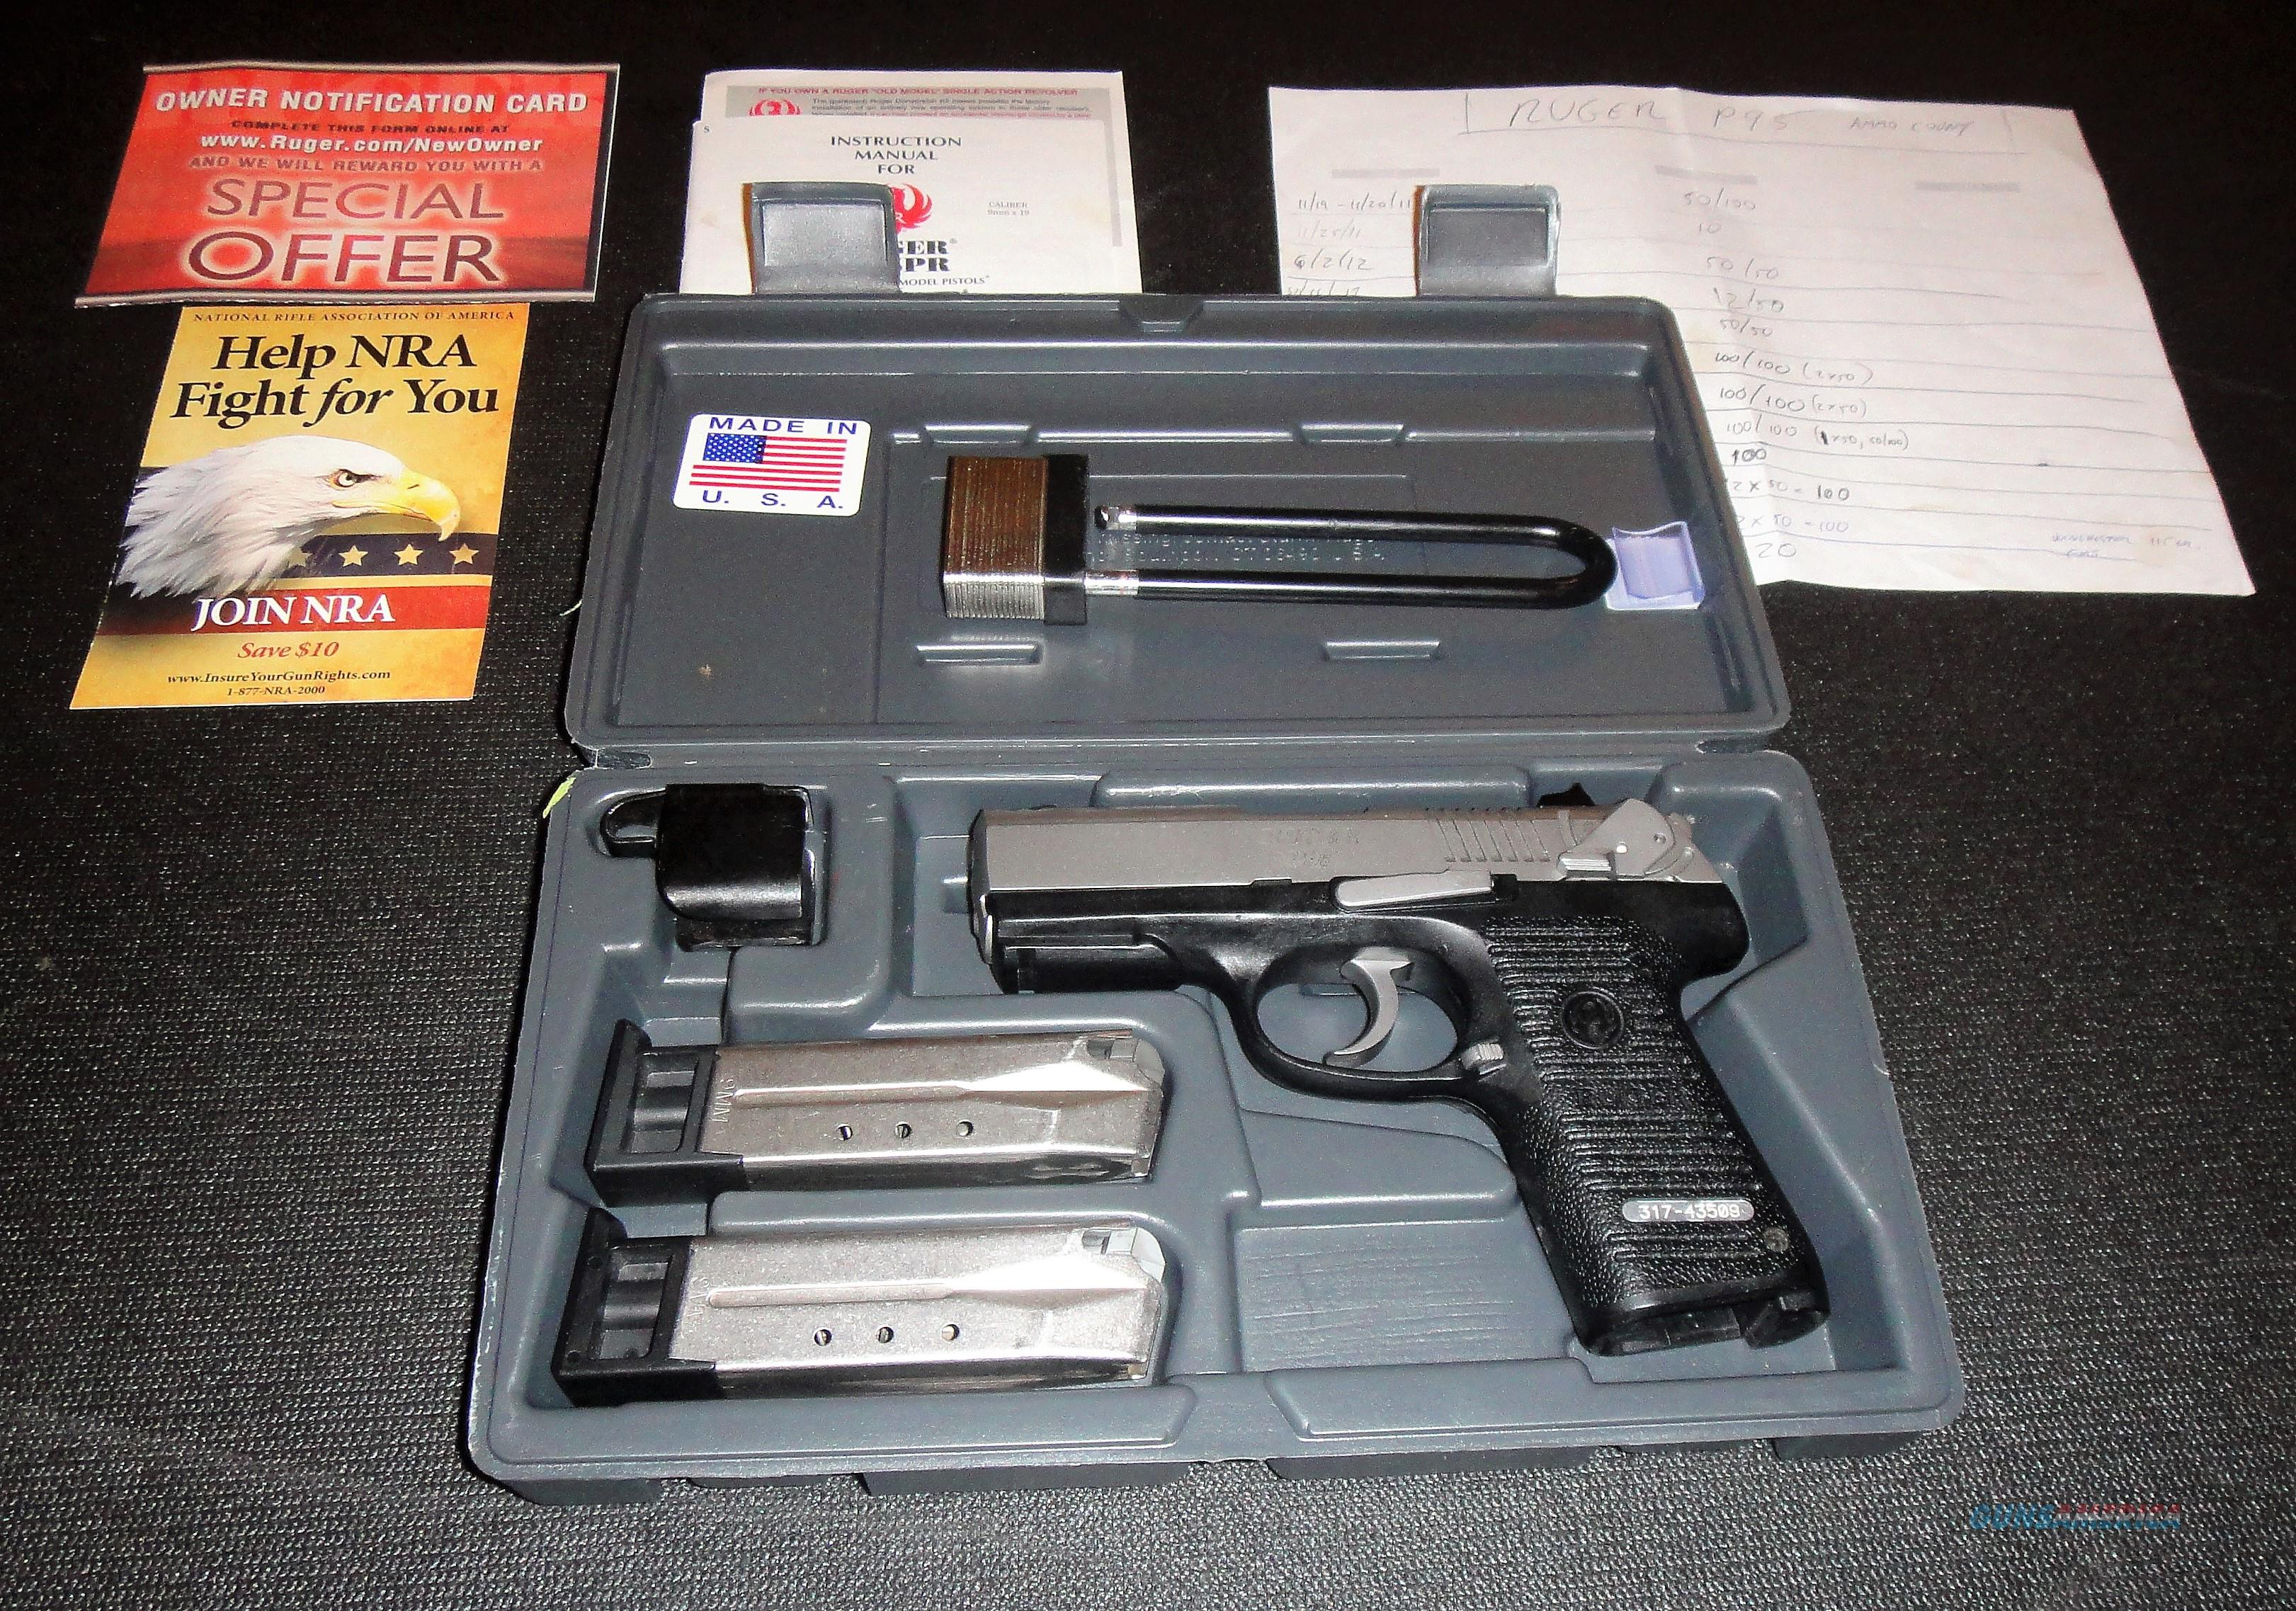 Ruger P95 9mm Nickel Finish w/ 3 mags - Hard Case - Manual + Holsters  Guns > Pistols > Ruger Semi-Auto Pistols > P-Series